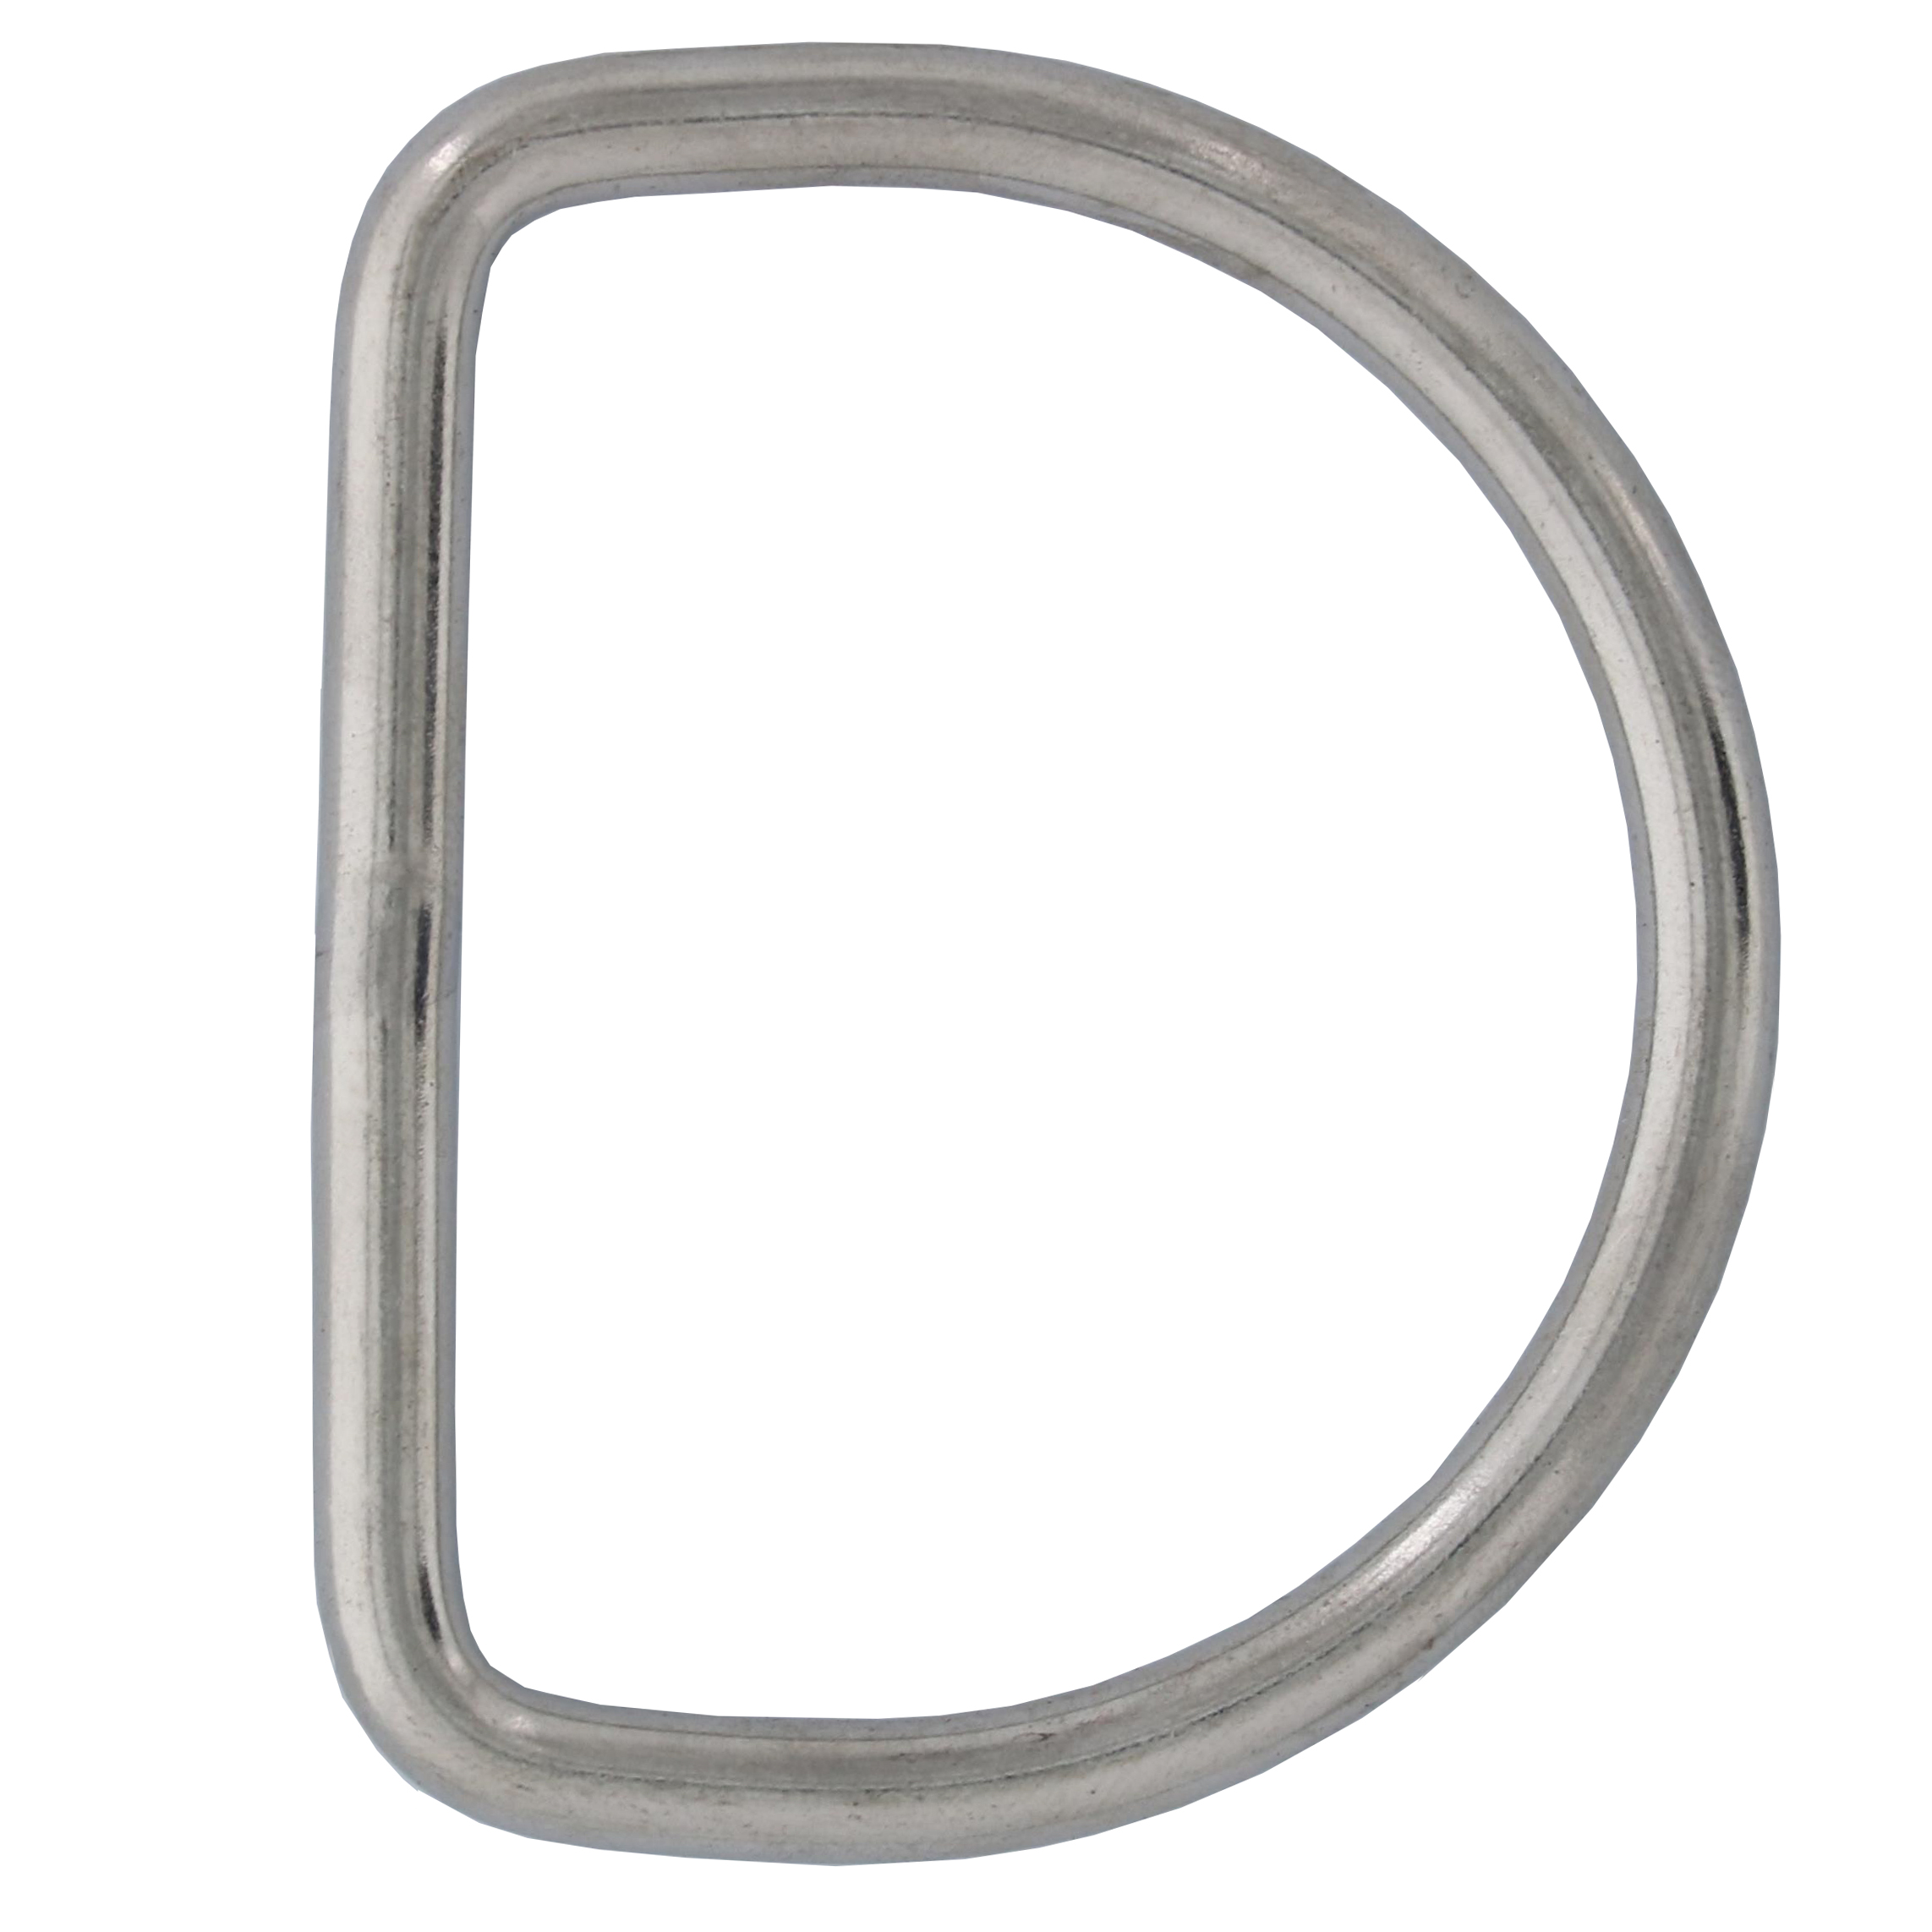 "3/16"" x 1-7/8"" Stainless Steel D Ring Image 1"